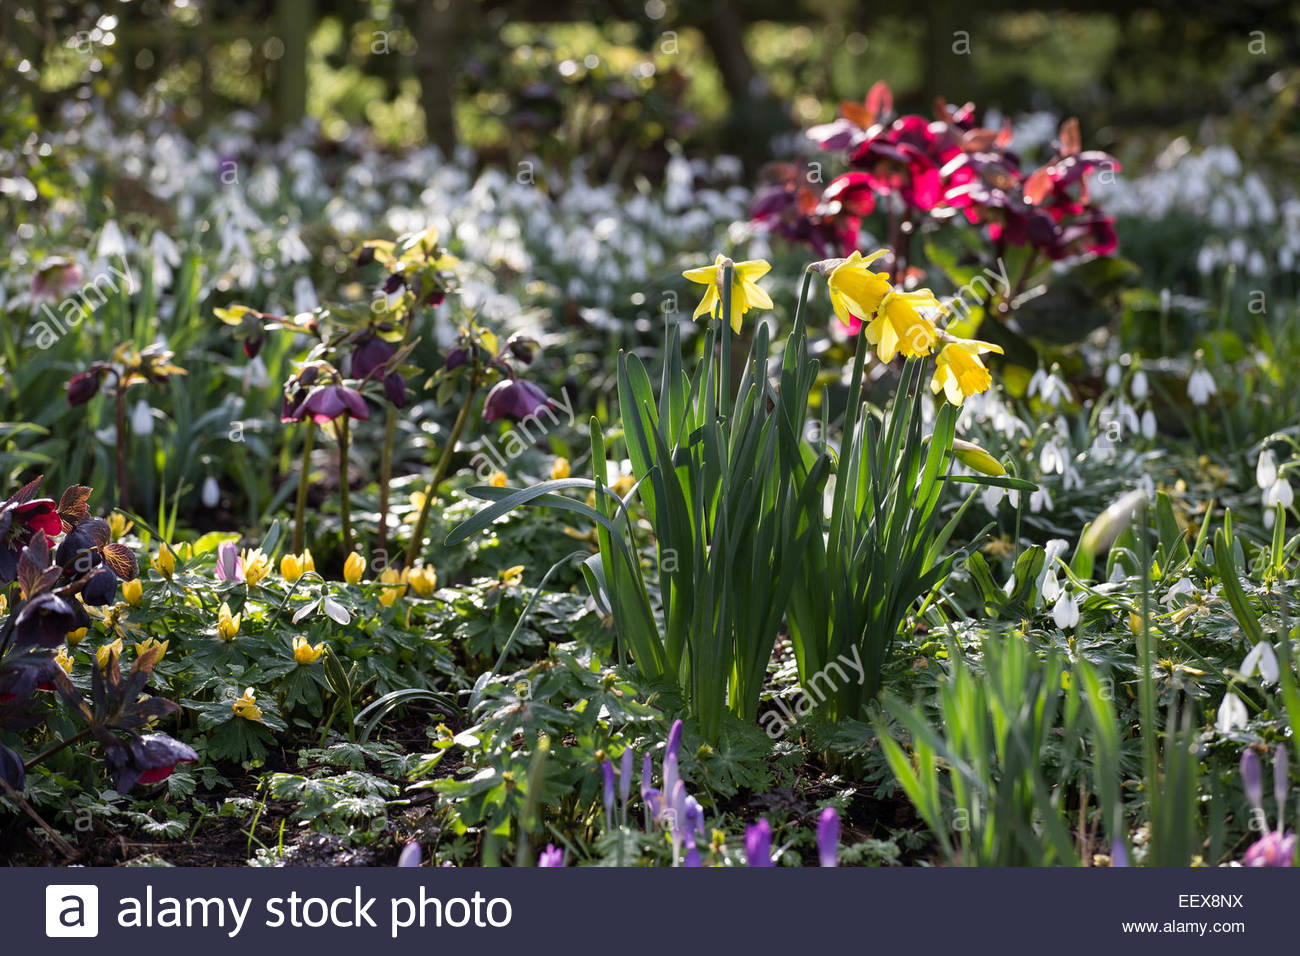 Spring Bulb Garden With Hellebores, Snowdrops And Daffodils